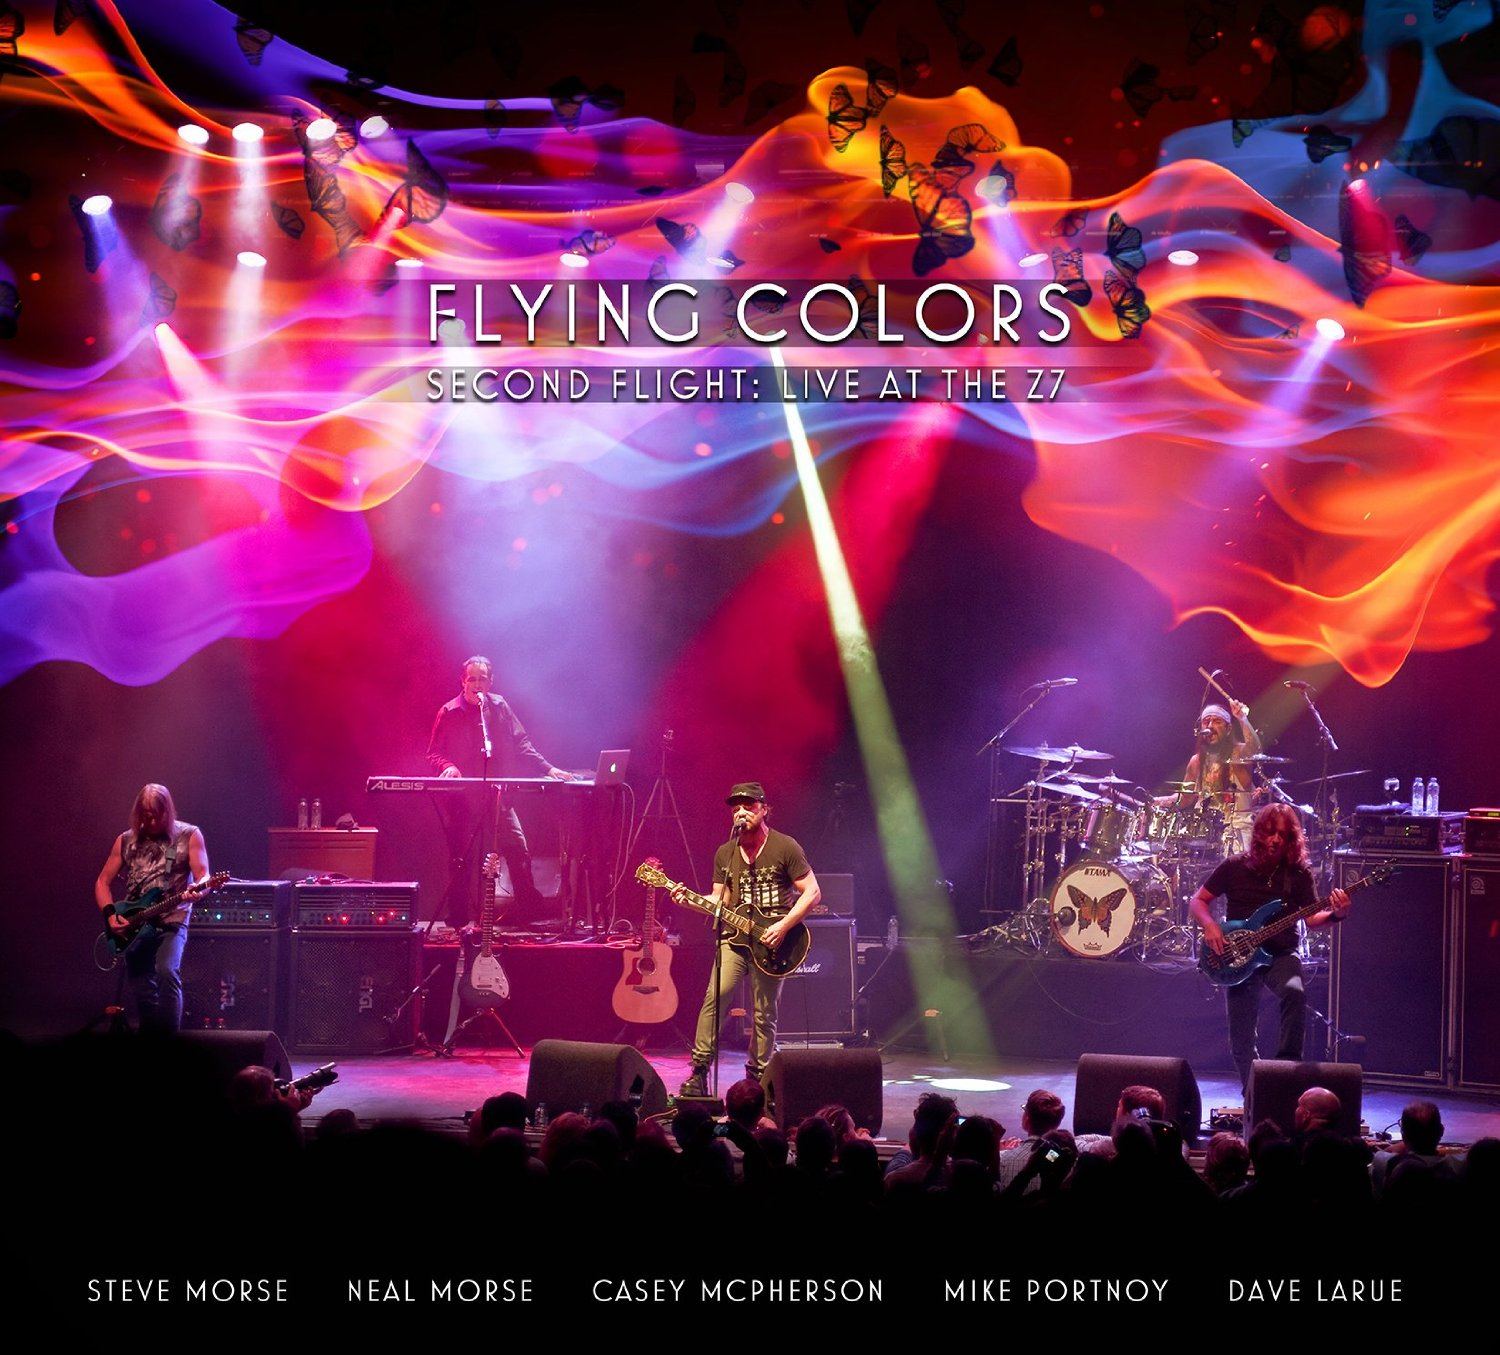 FlyingColors